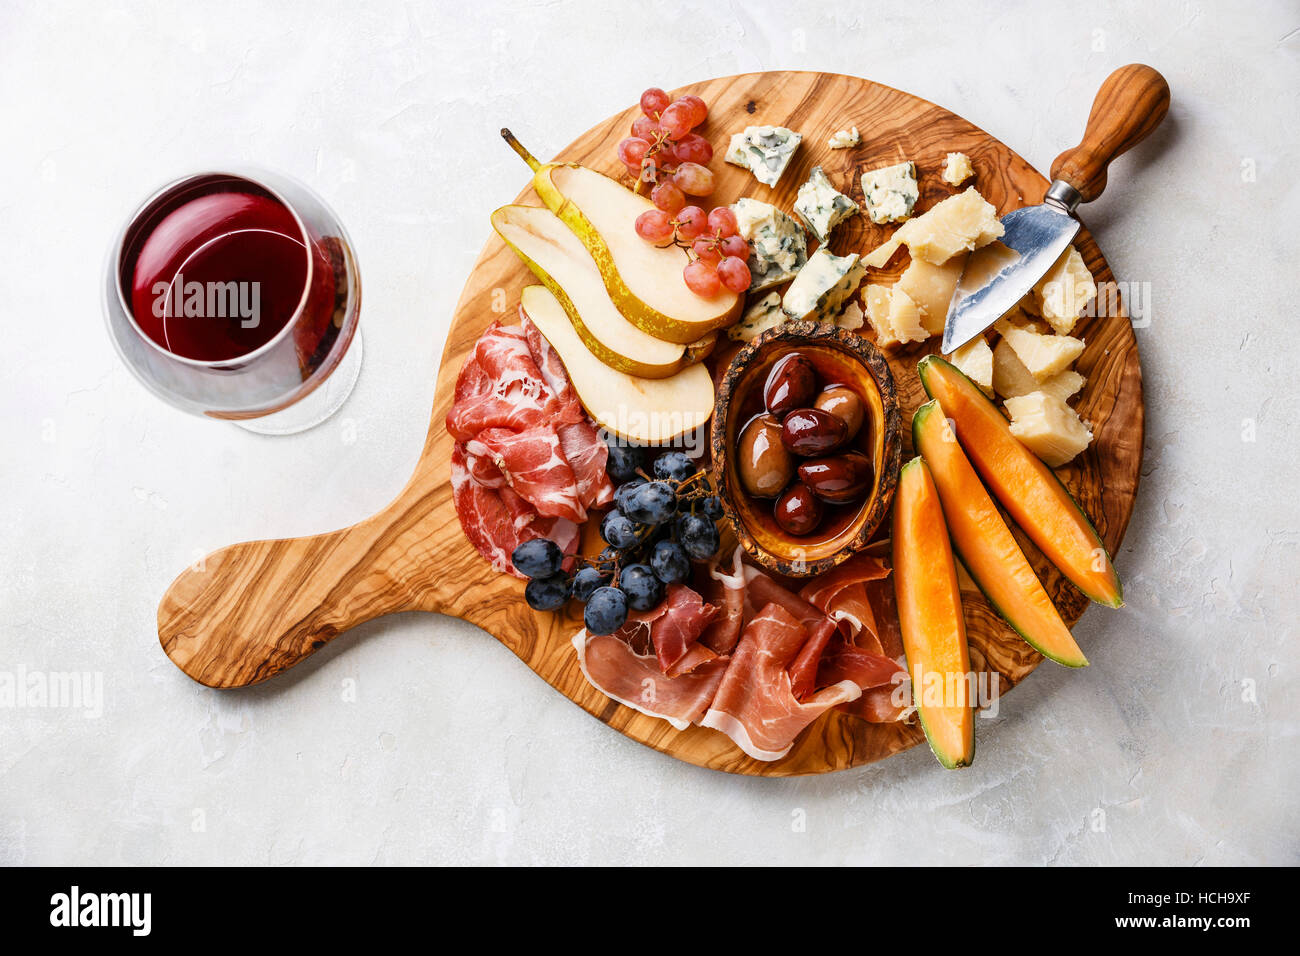 Meat and cheese plate antipasti snack with Prosciutto ham Parmesan Blue cheese Cantaloupe melon and Olives on olive wood serving board on concrete : cheese dessert plate - pezcame.com